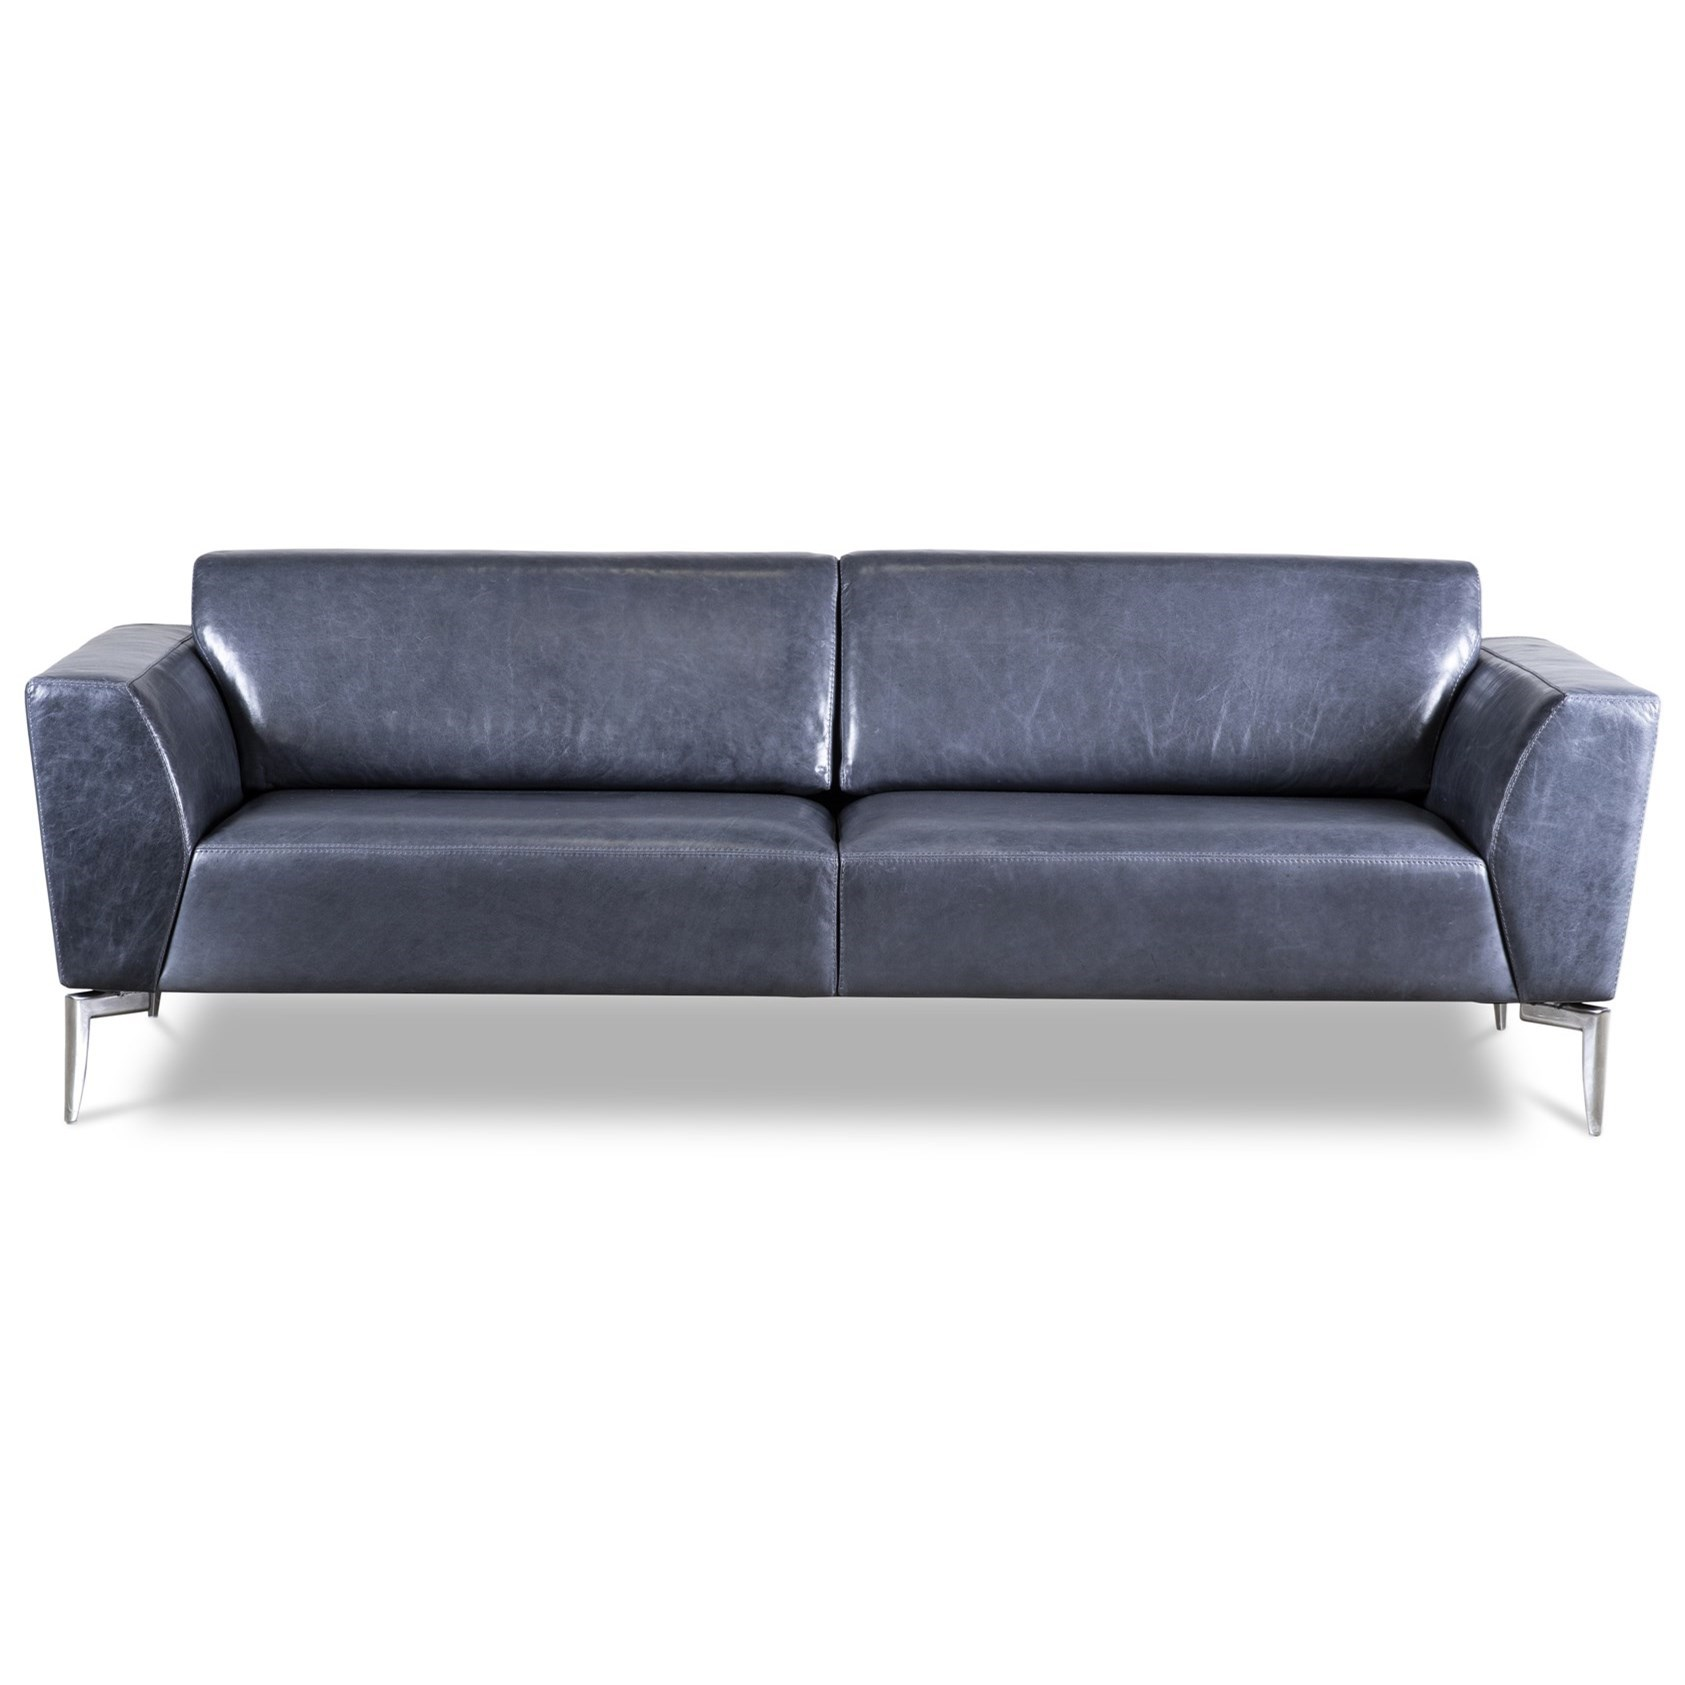 Adriana Two-Seat Sofa by American Leather at Williams & Kay